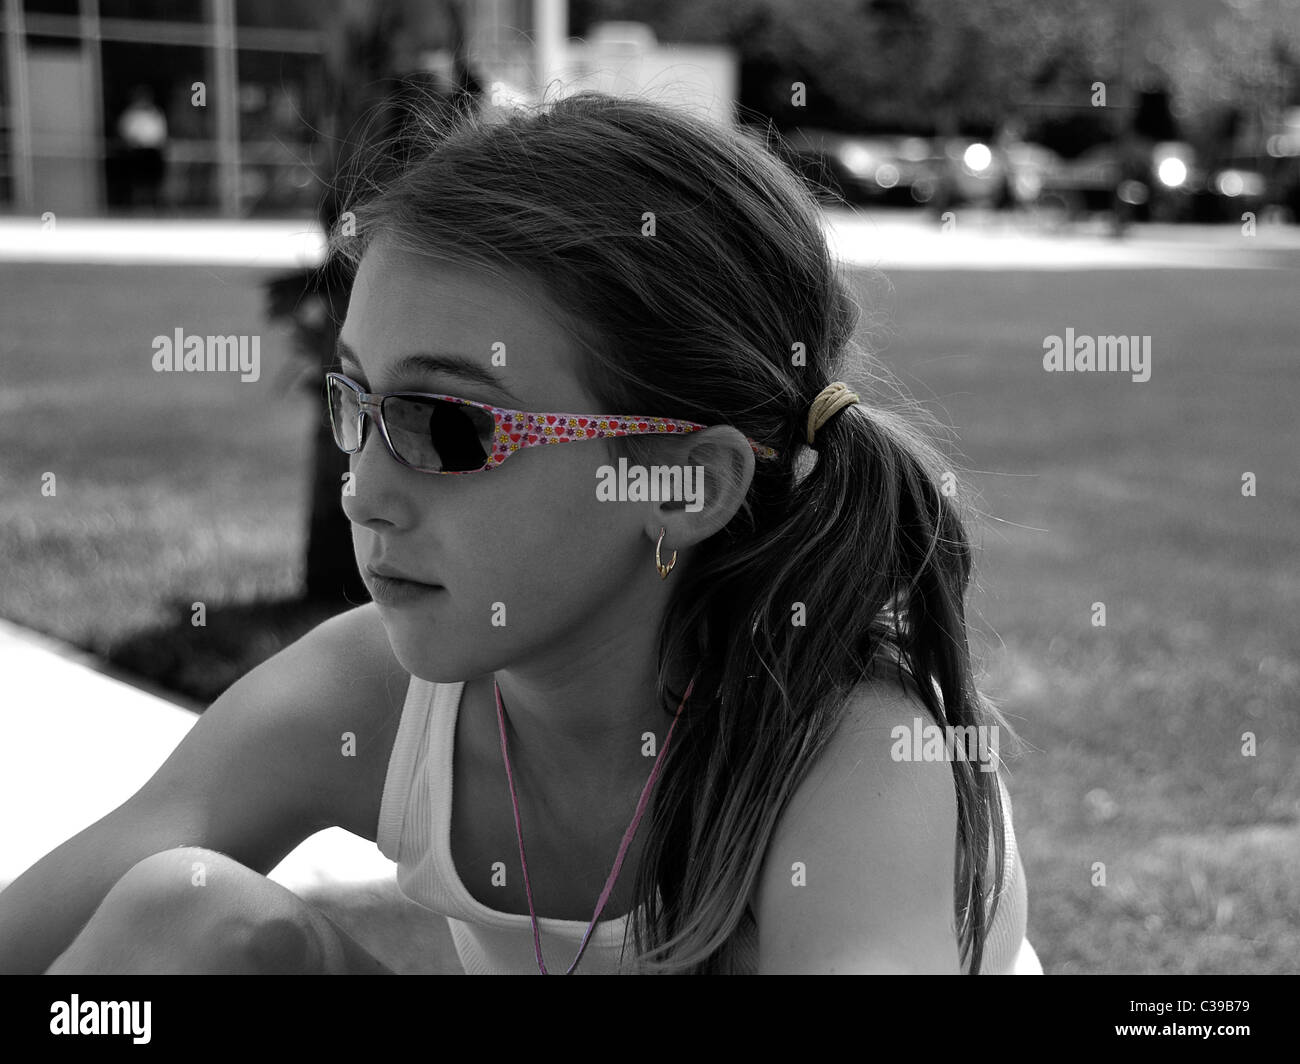 Two-toned photograph of a young girl contemplating life. - Stock Image